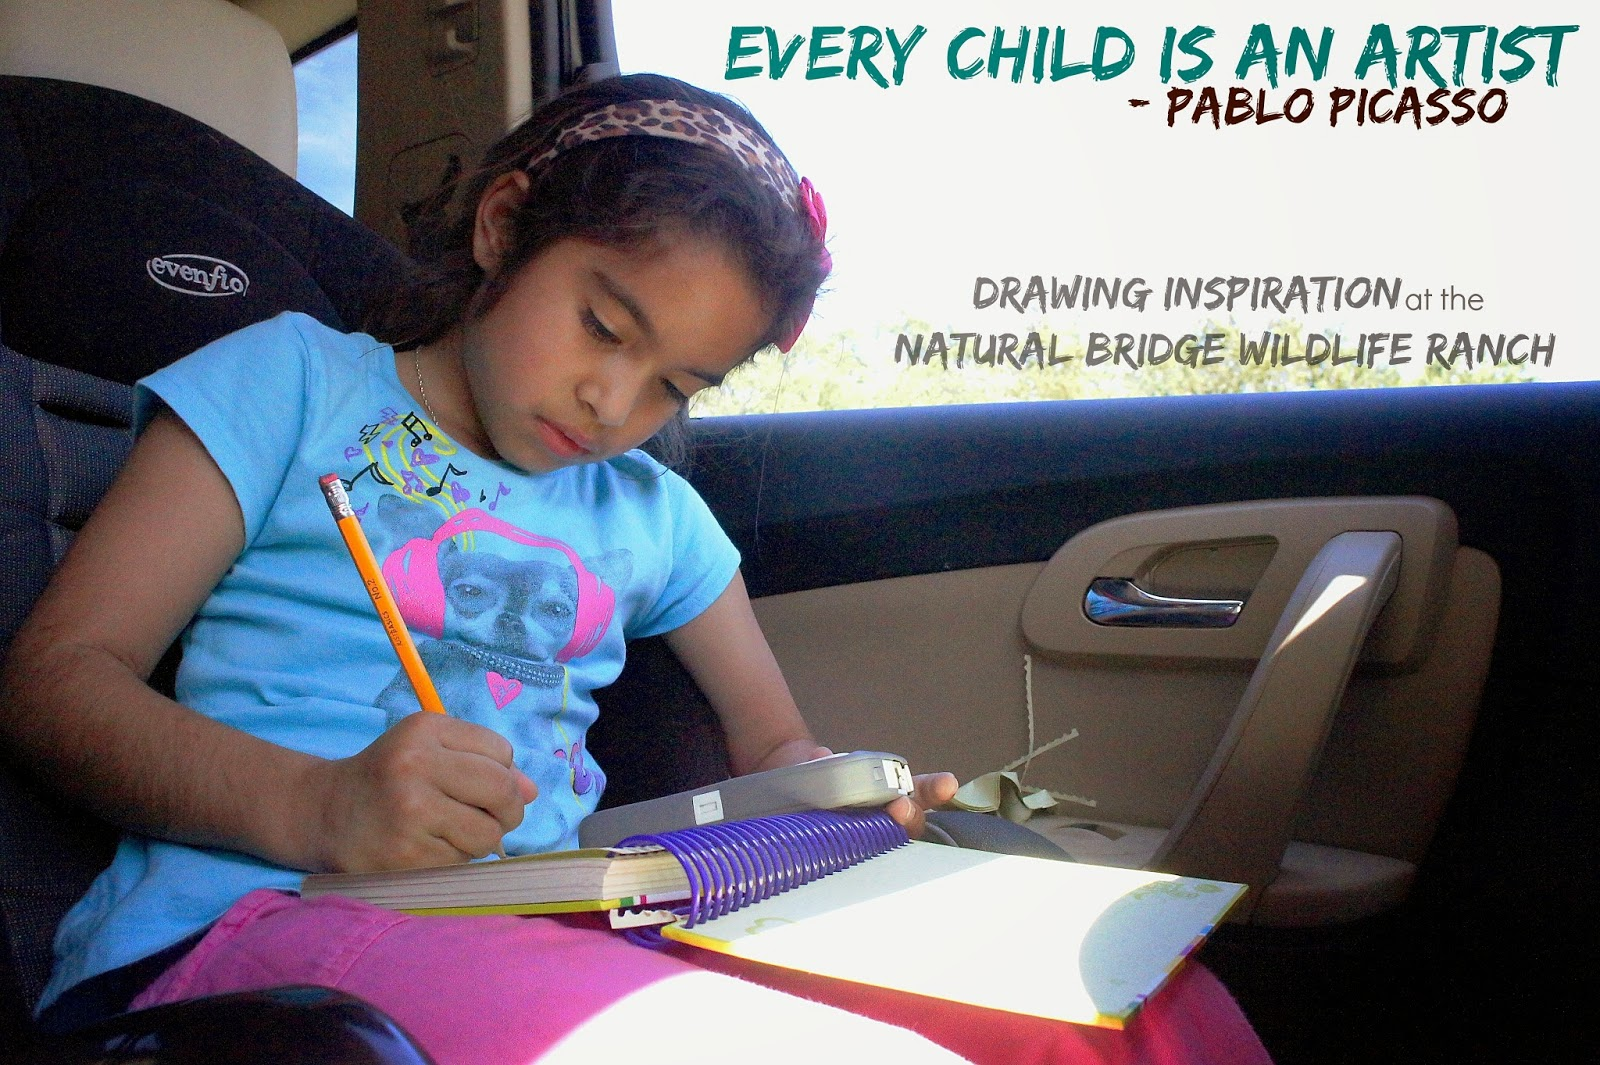 Drawing Inspiration at the Natural Bridge Wildlife Ranch in San Antonio, Texas